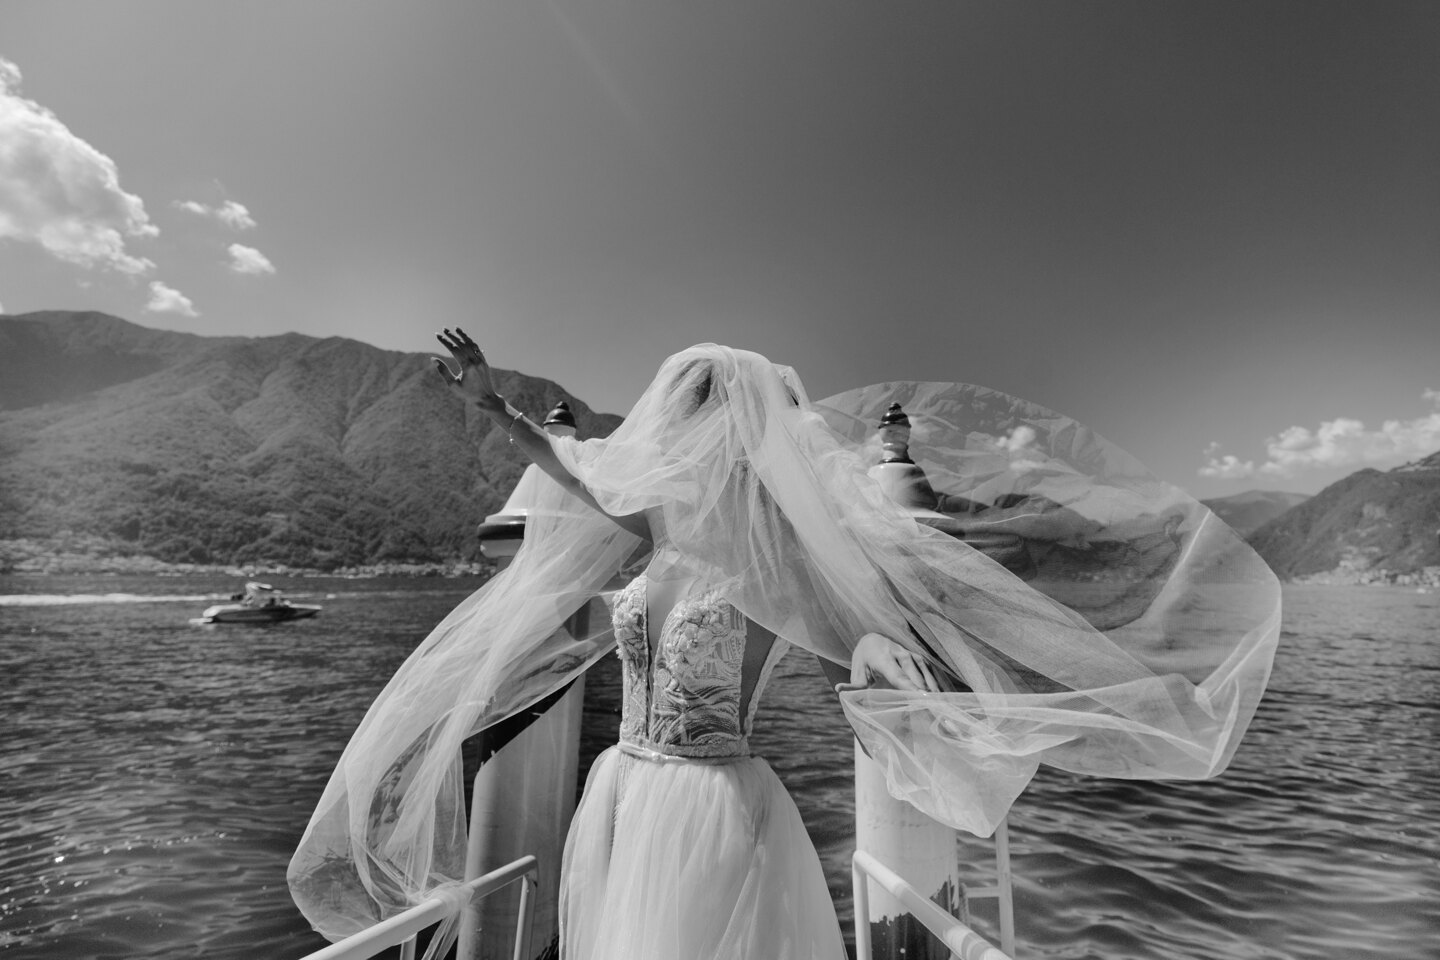 Wedding Photographer in Italy: The bride in a white wedding dress is trying to curb her wedding veil, which is greatly destroyed by the wind, on the lake, among the mountains